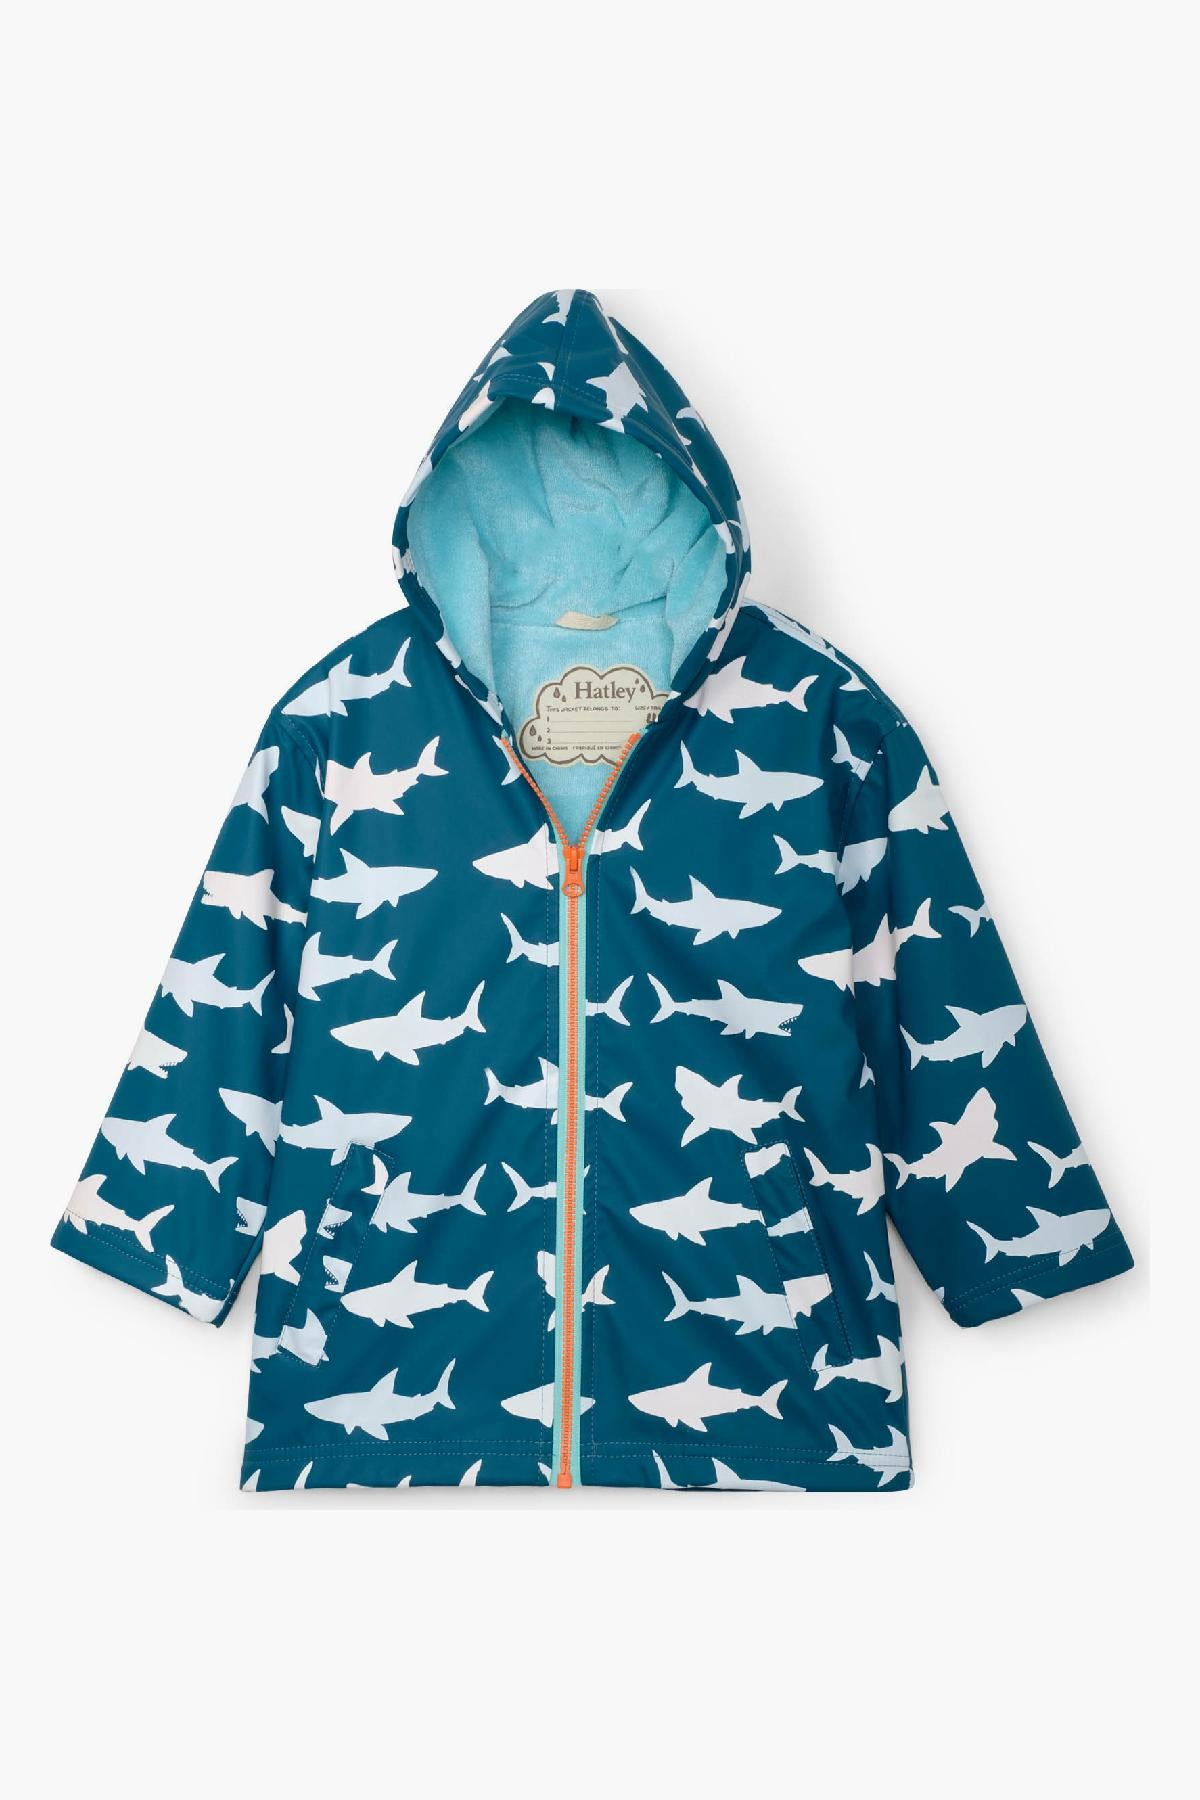 Hatley Great White Sharks Color Changing Boys Raincoat